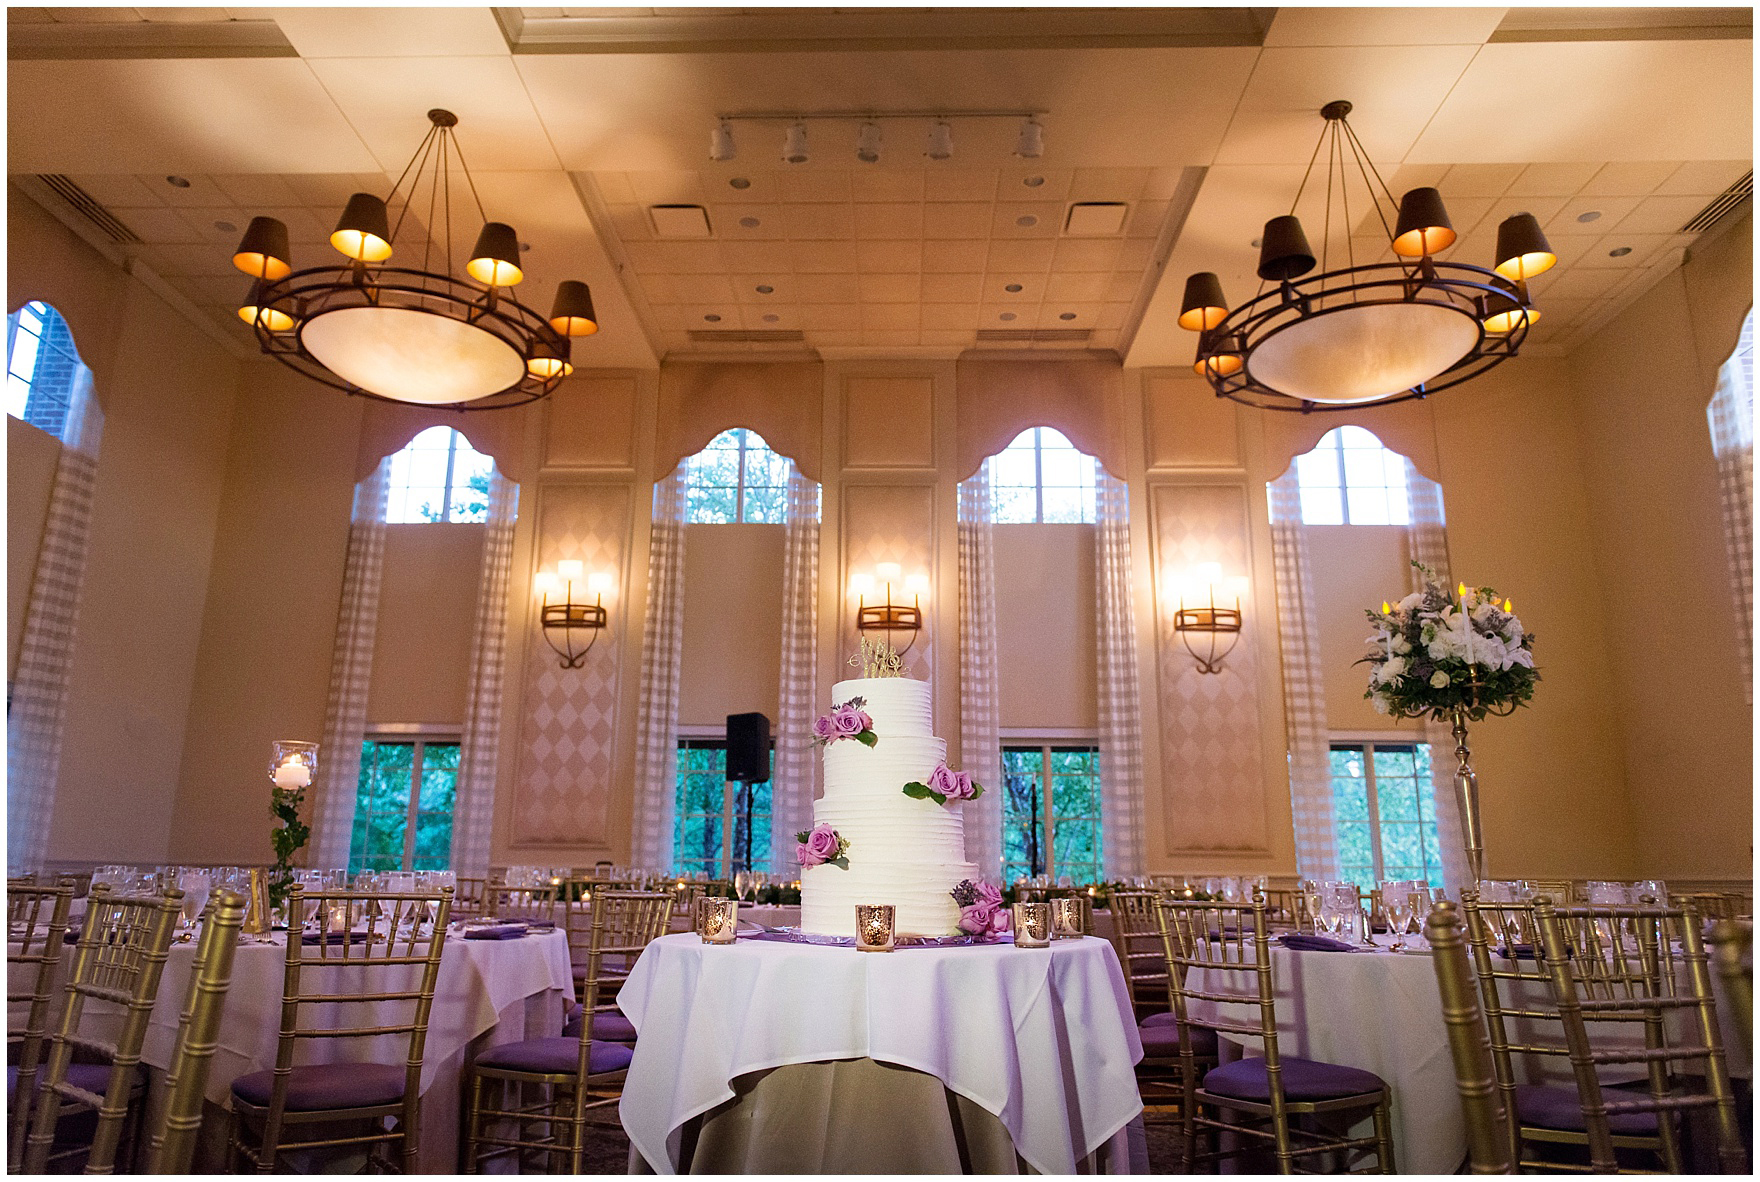 A tiered cake with lavender flowers for a Glen Club Glenview Illinois wedding.